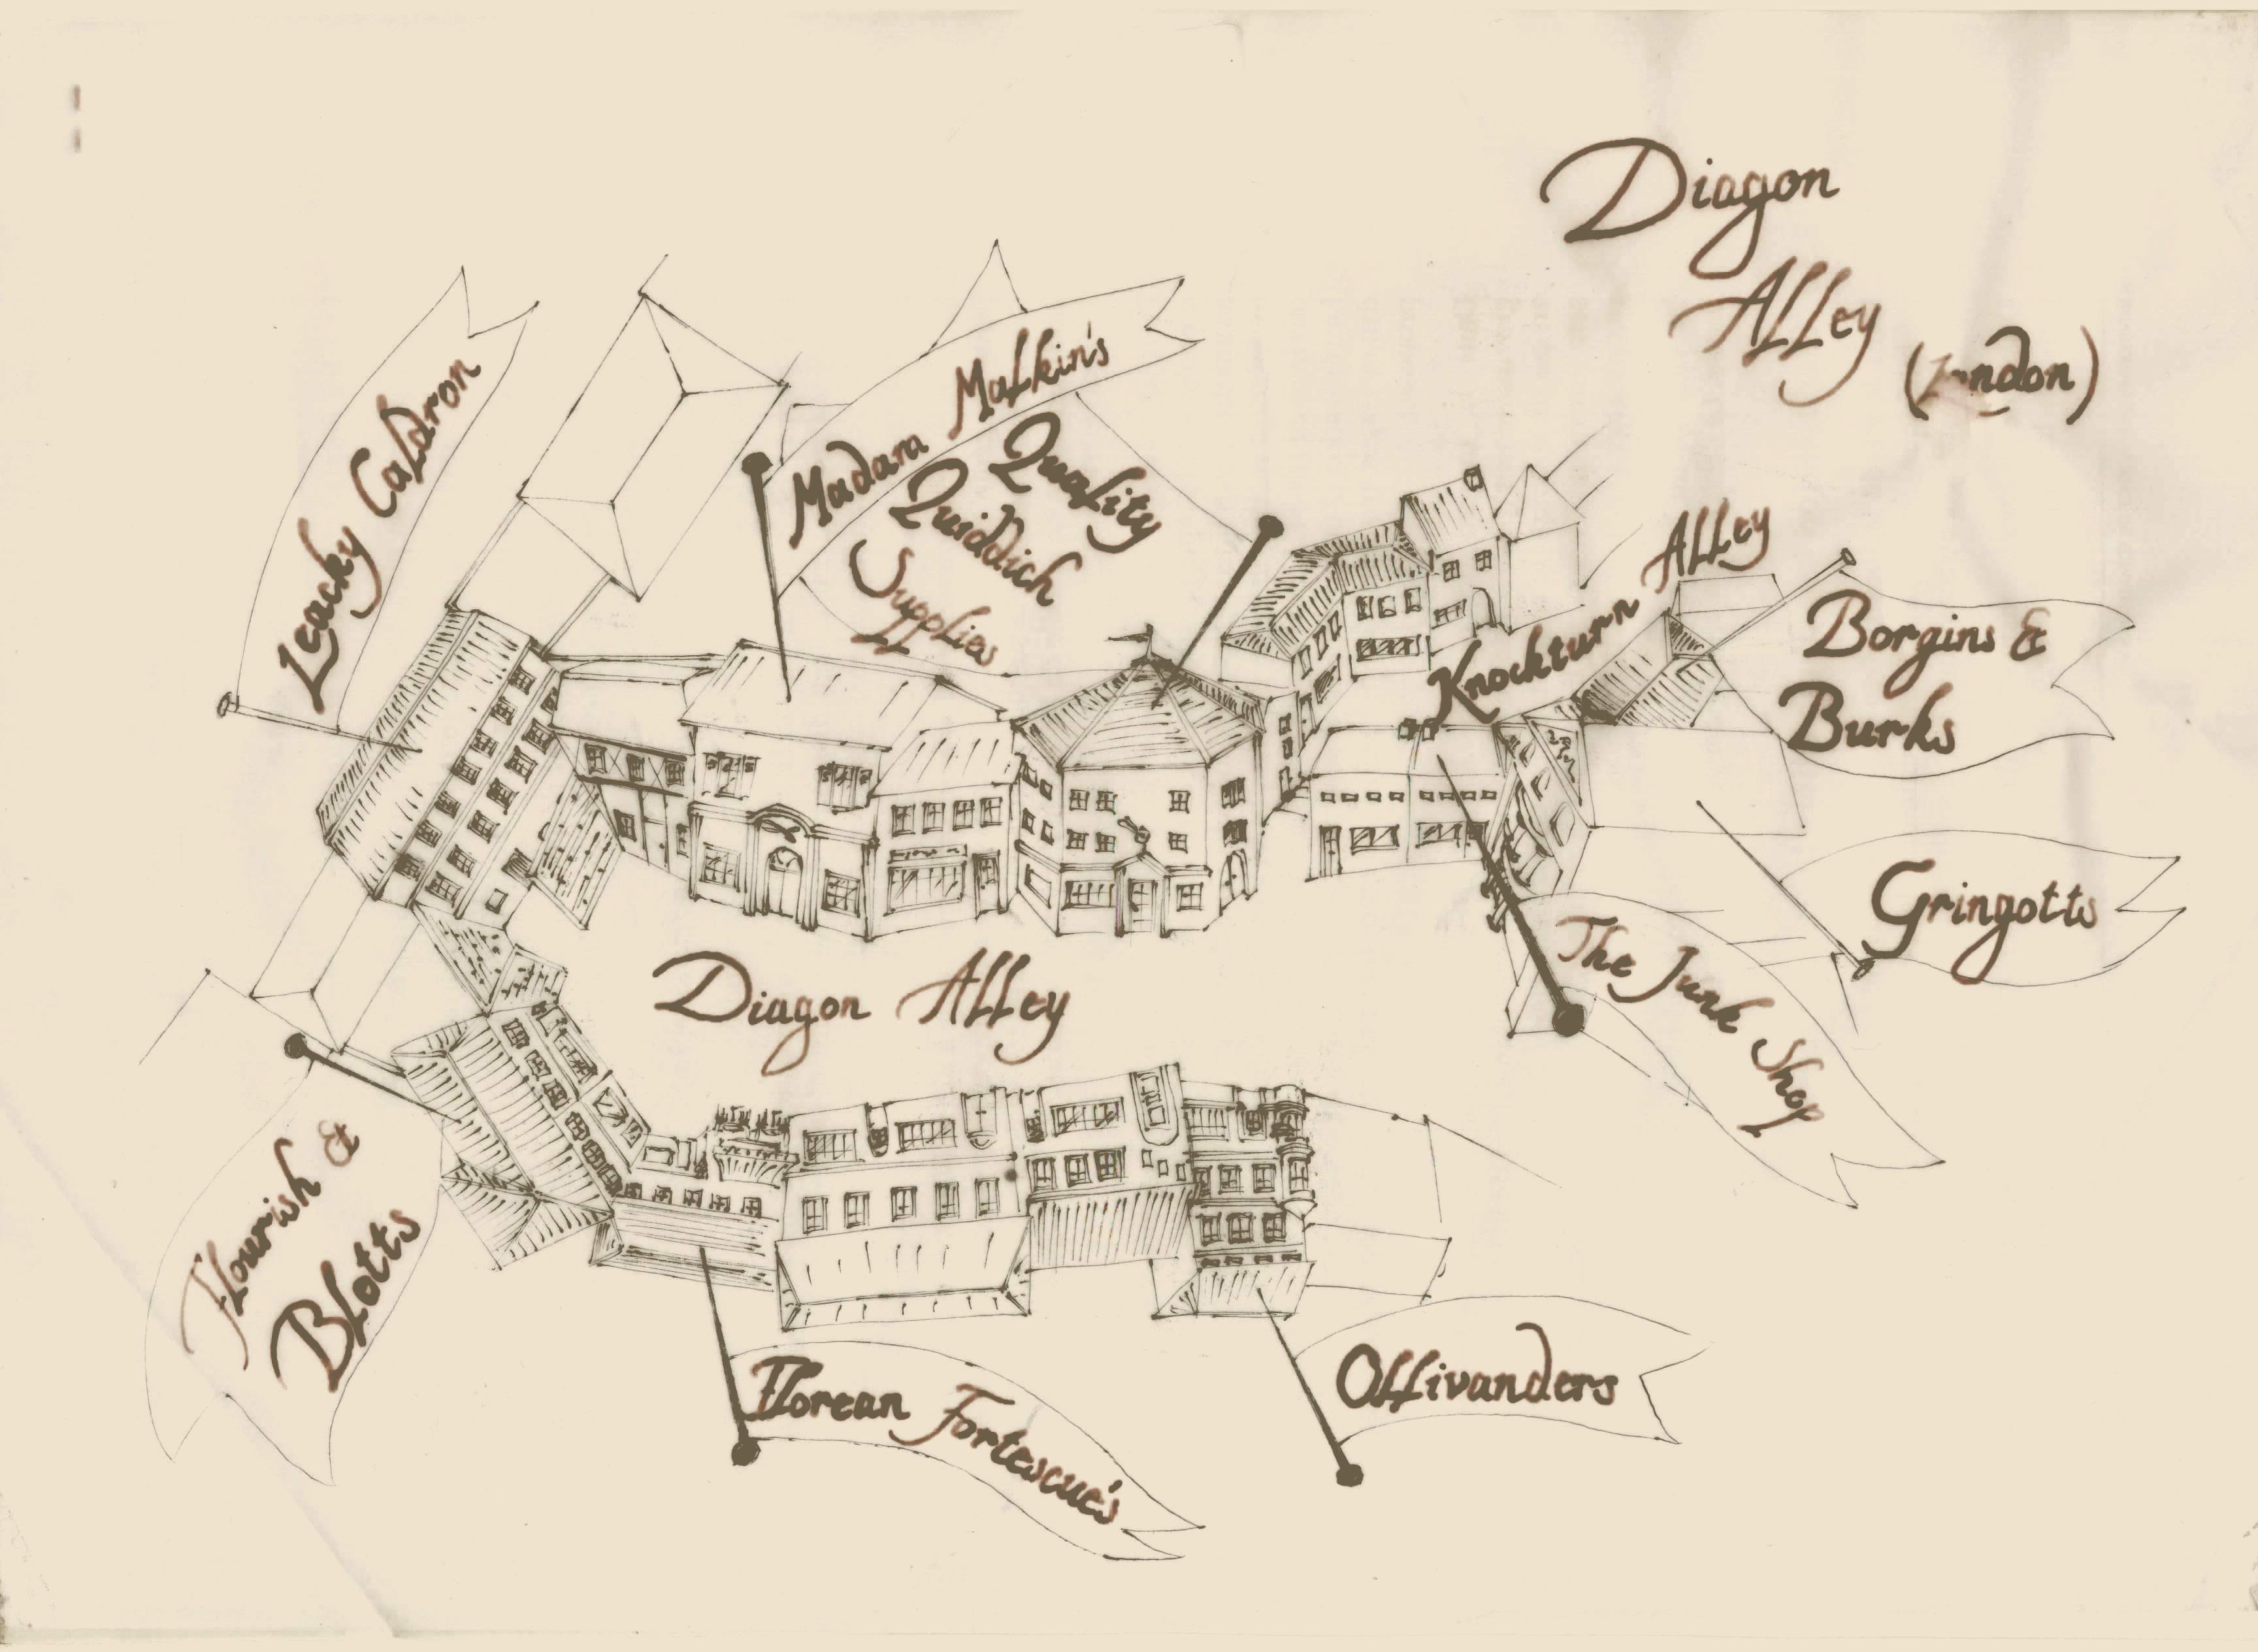 Any detailed maps of Diagon Alley? : harrypotter on iowa county map, j.k. rowling map, ministry of magic map, wizard map, harry potter alley map, charing cross galloway street map, oklahoma tornado alley map, chamber of secrets map, hogwarts map, home map,